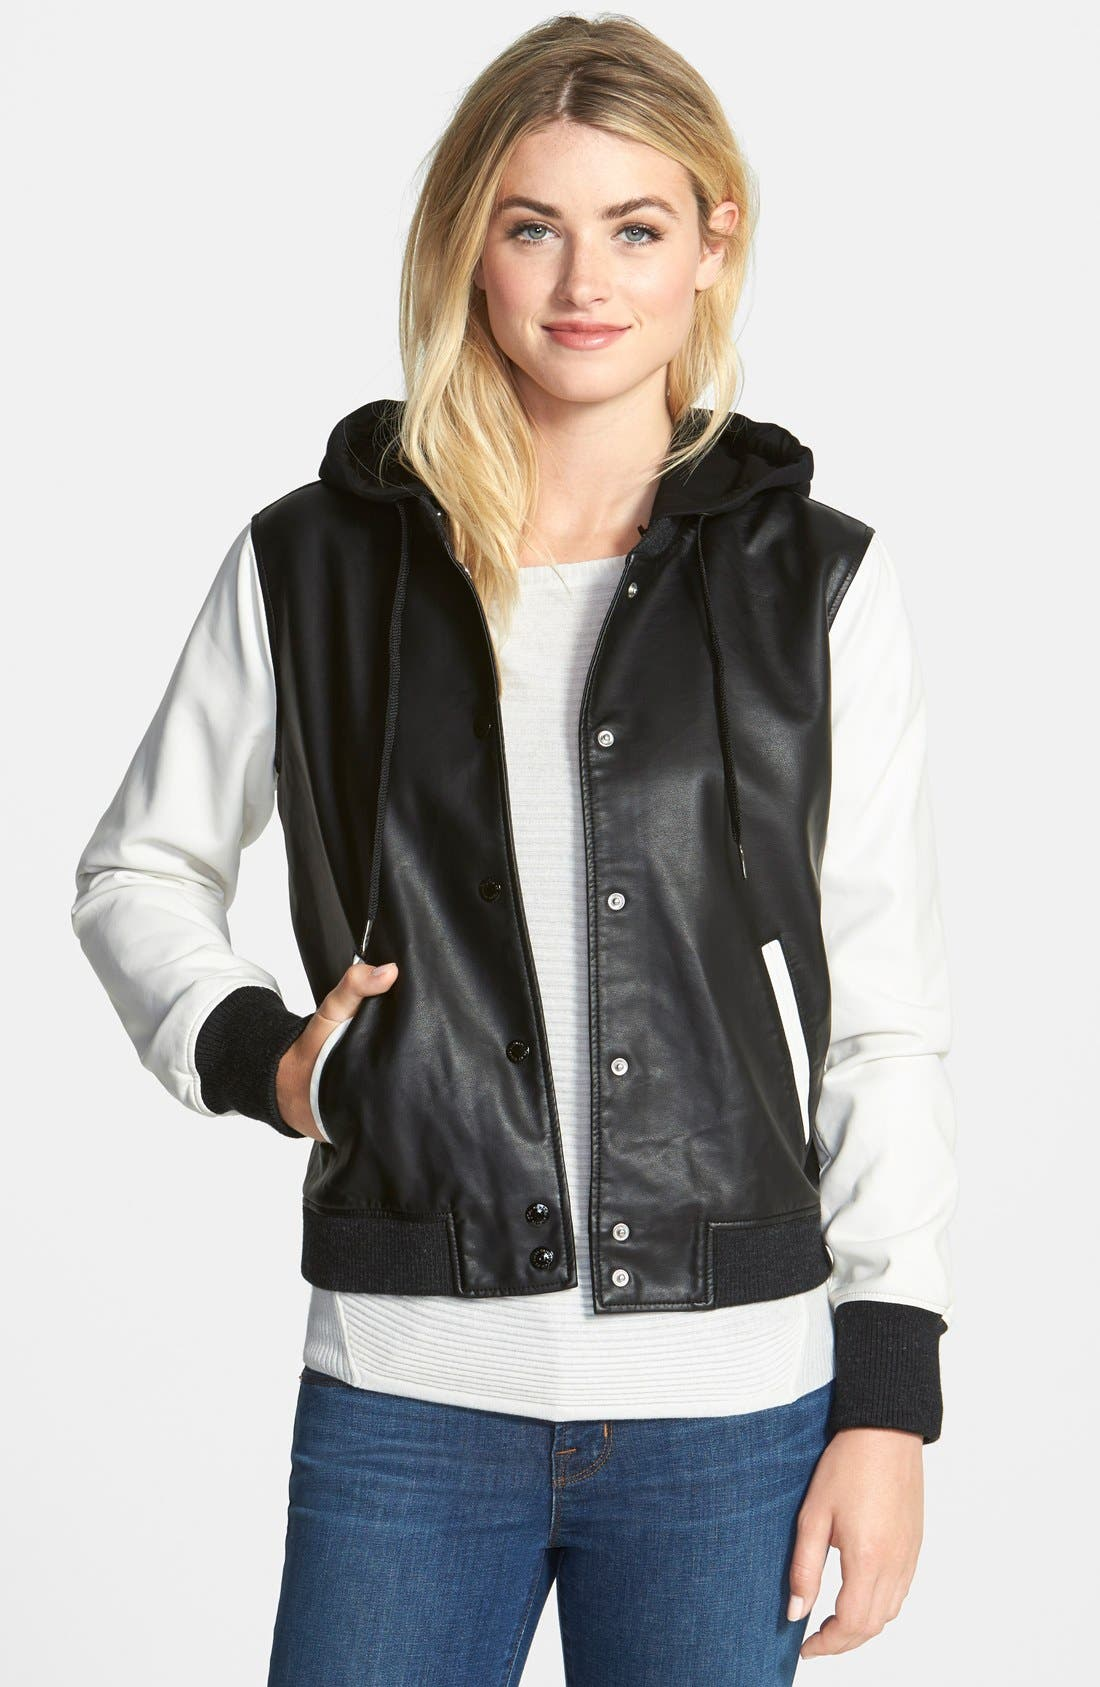 Alternate Image 1 Selected - Two by Vince Camuto Lightweight Faux Leather Bomber Jacket